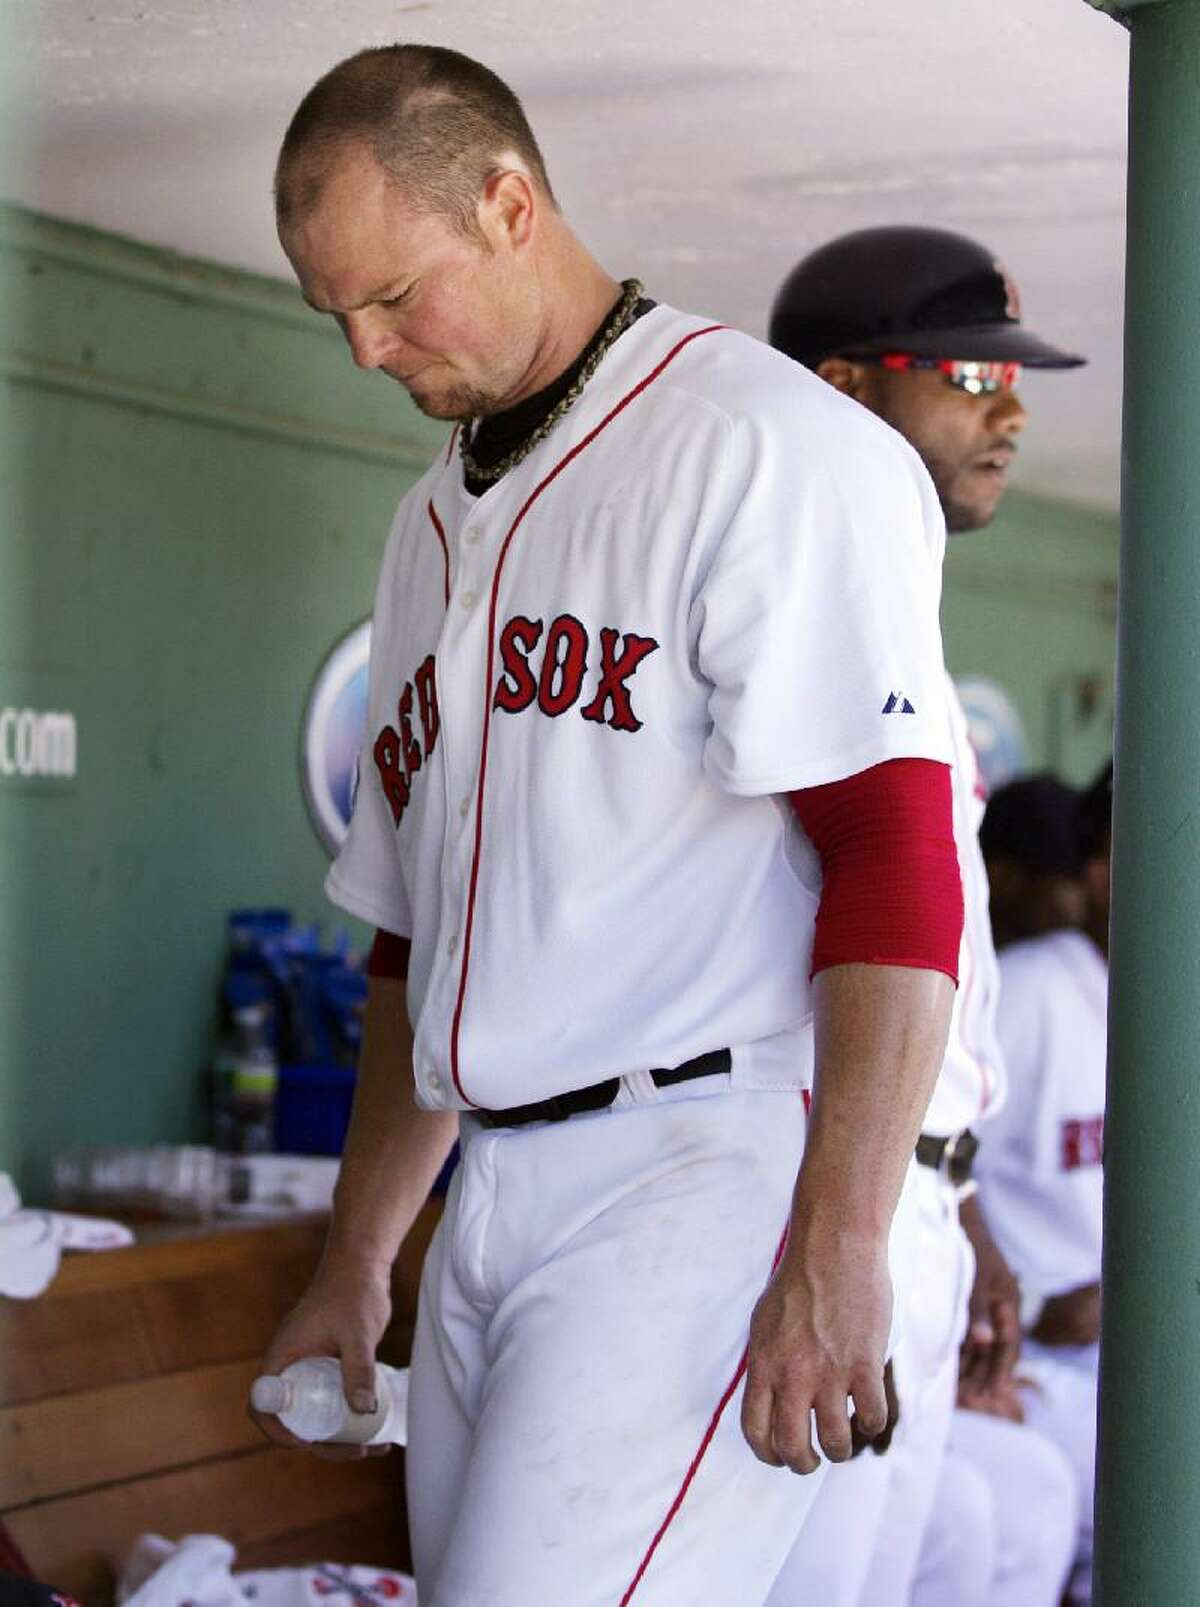 ASSOCIATED PRESS Boston Red Sox pitcher Jon Lester looks down in the dugout after being pulled in the fifth inning of Sunday's game against the Toronto Blue Jays at Fenway Park. The Blue Jays won 15-7.